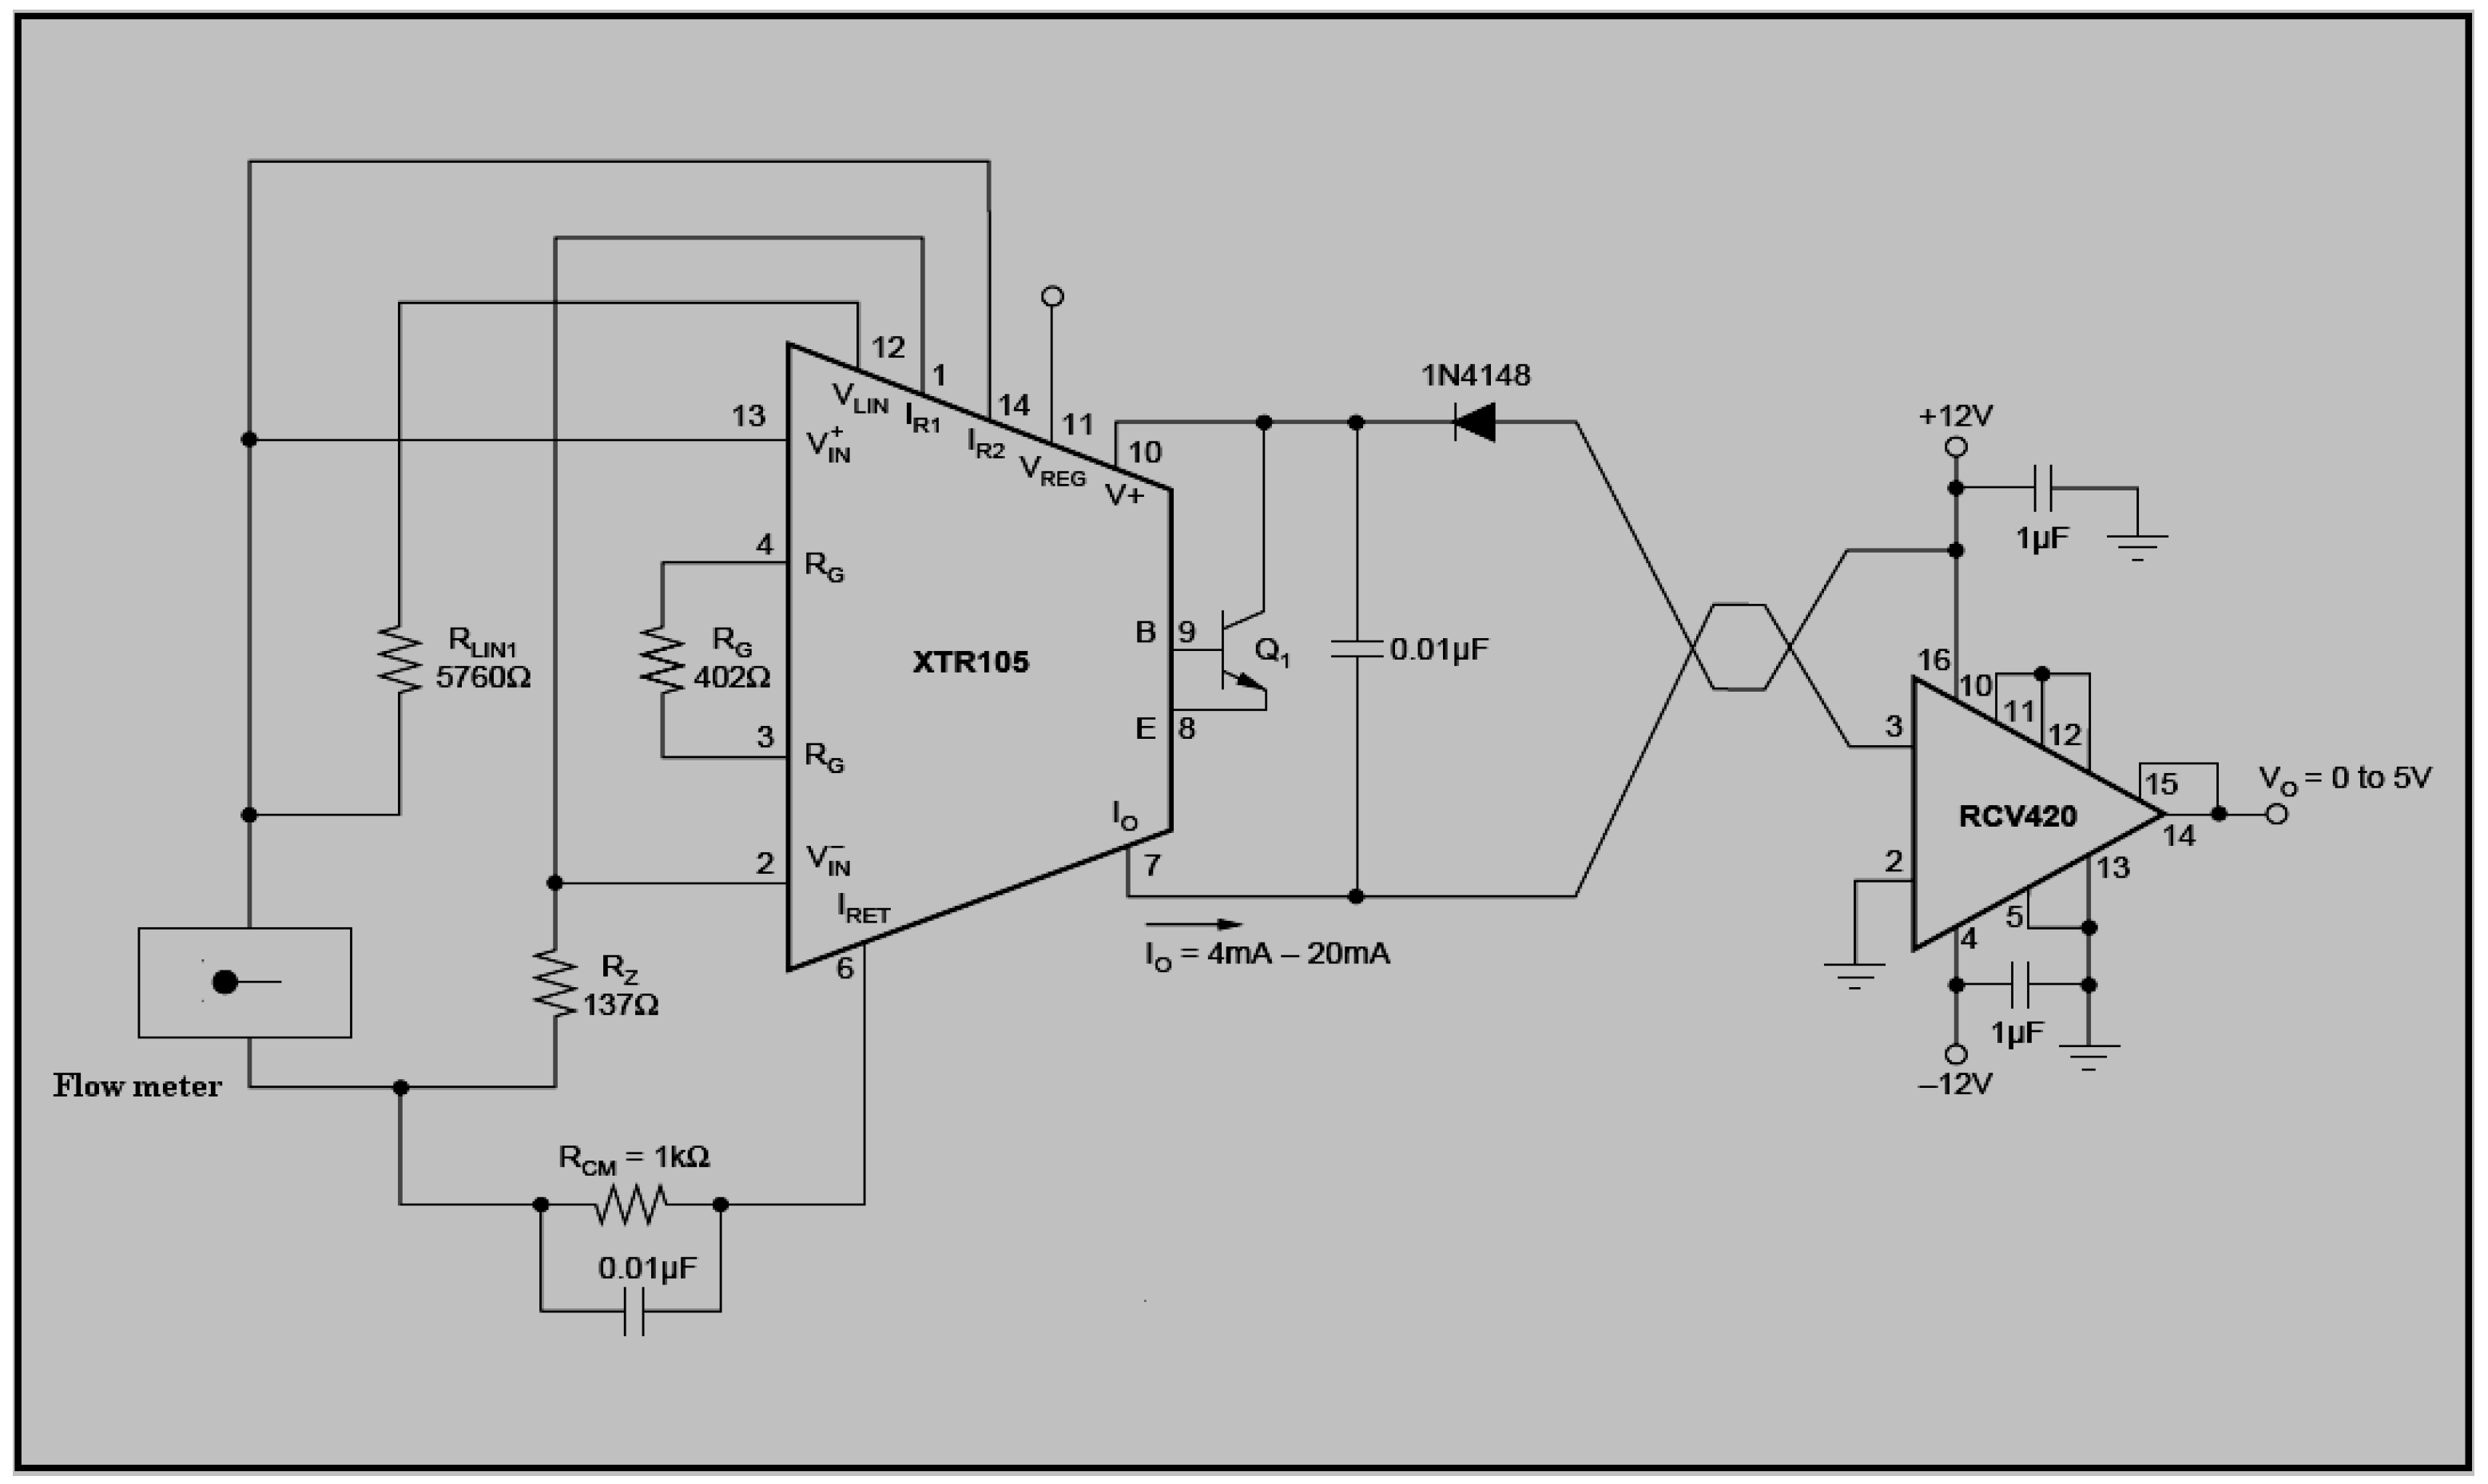 Flow Computer Wiring Diagram 4020 Schematic Diagrams Energies Free Full Text A Low Cost Wireless Data Acquisition